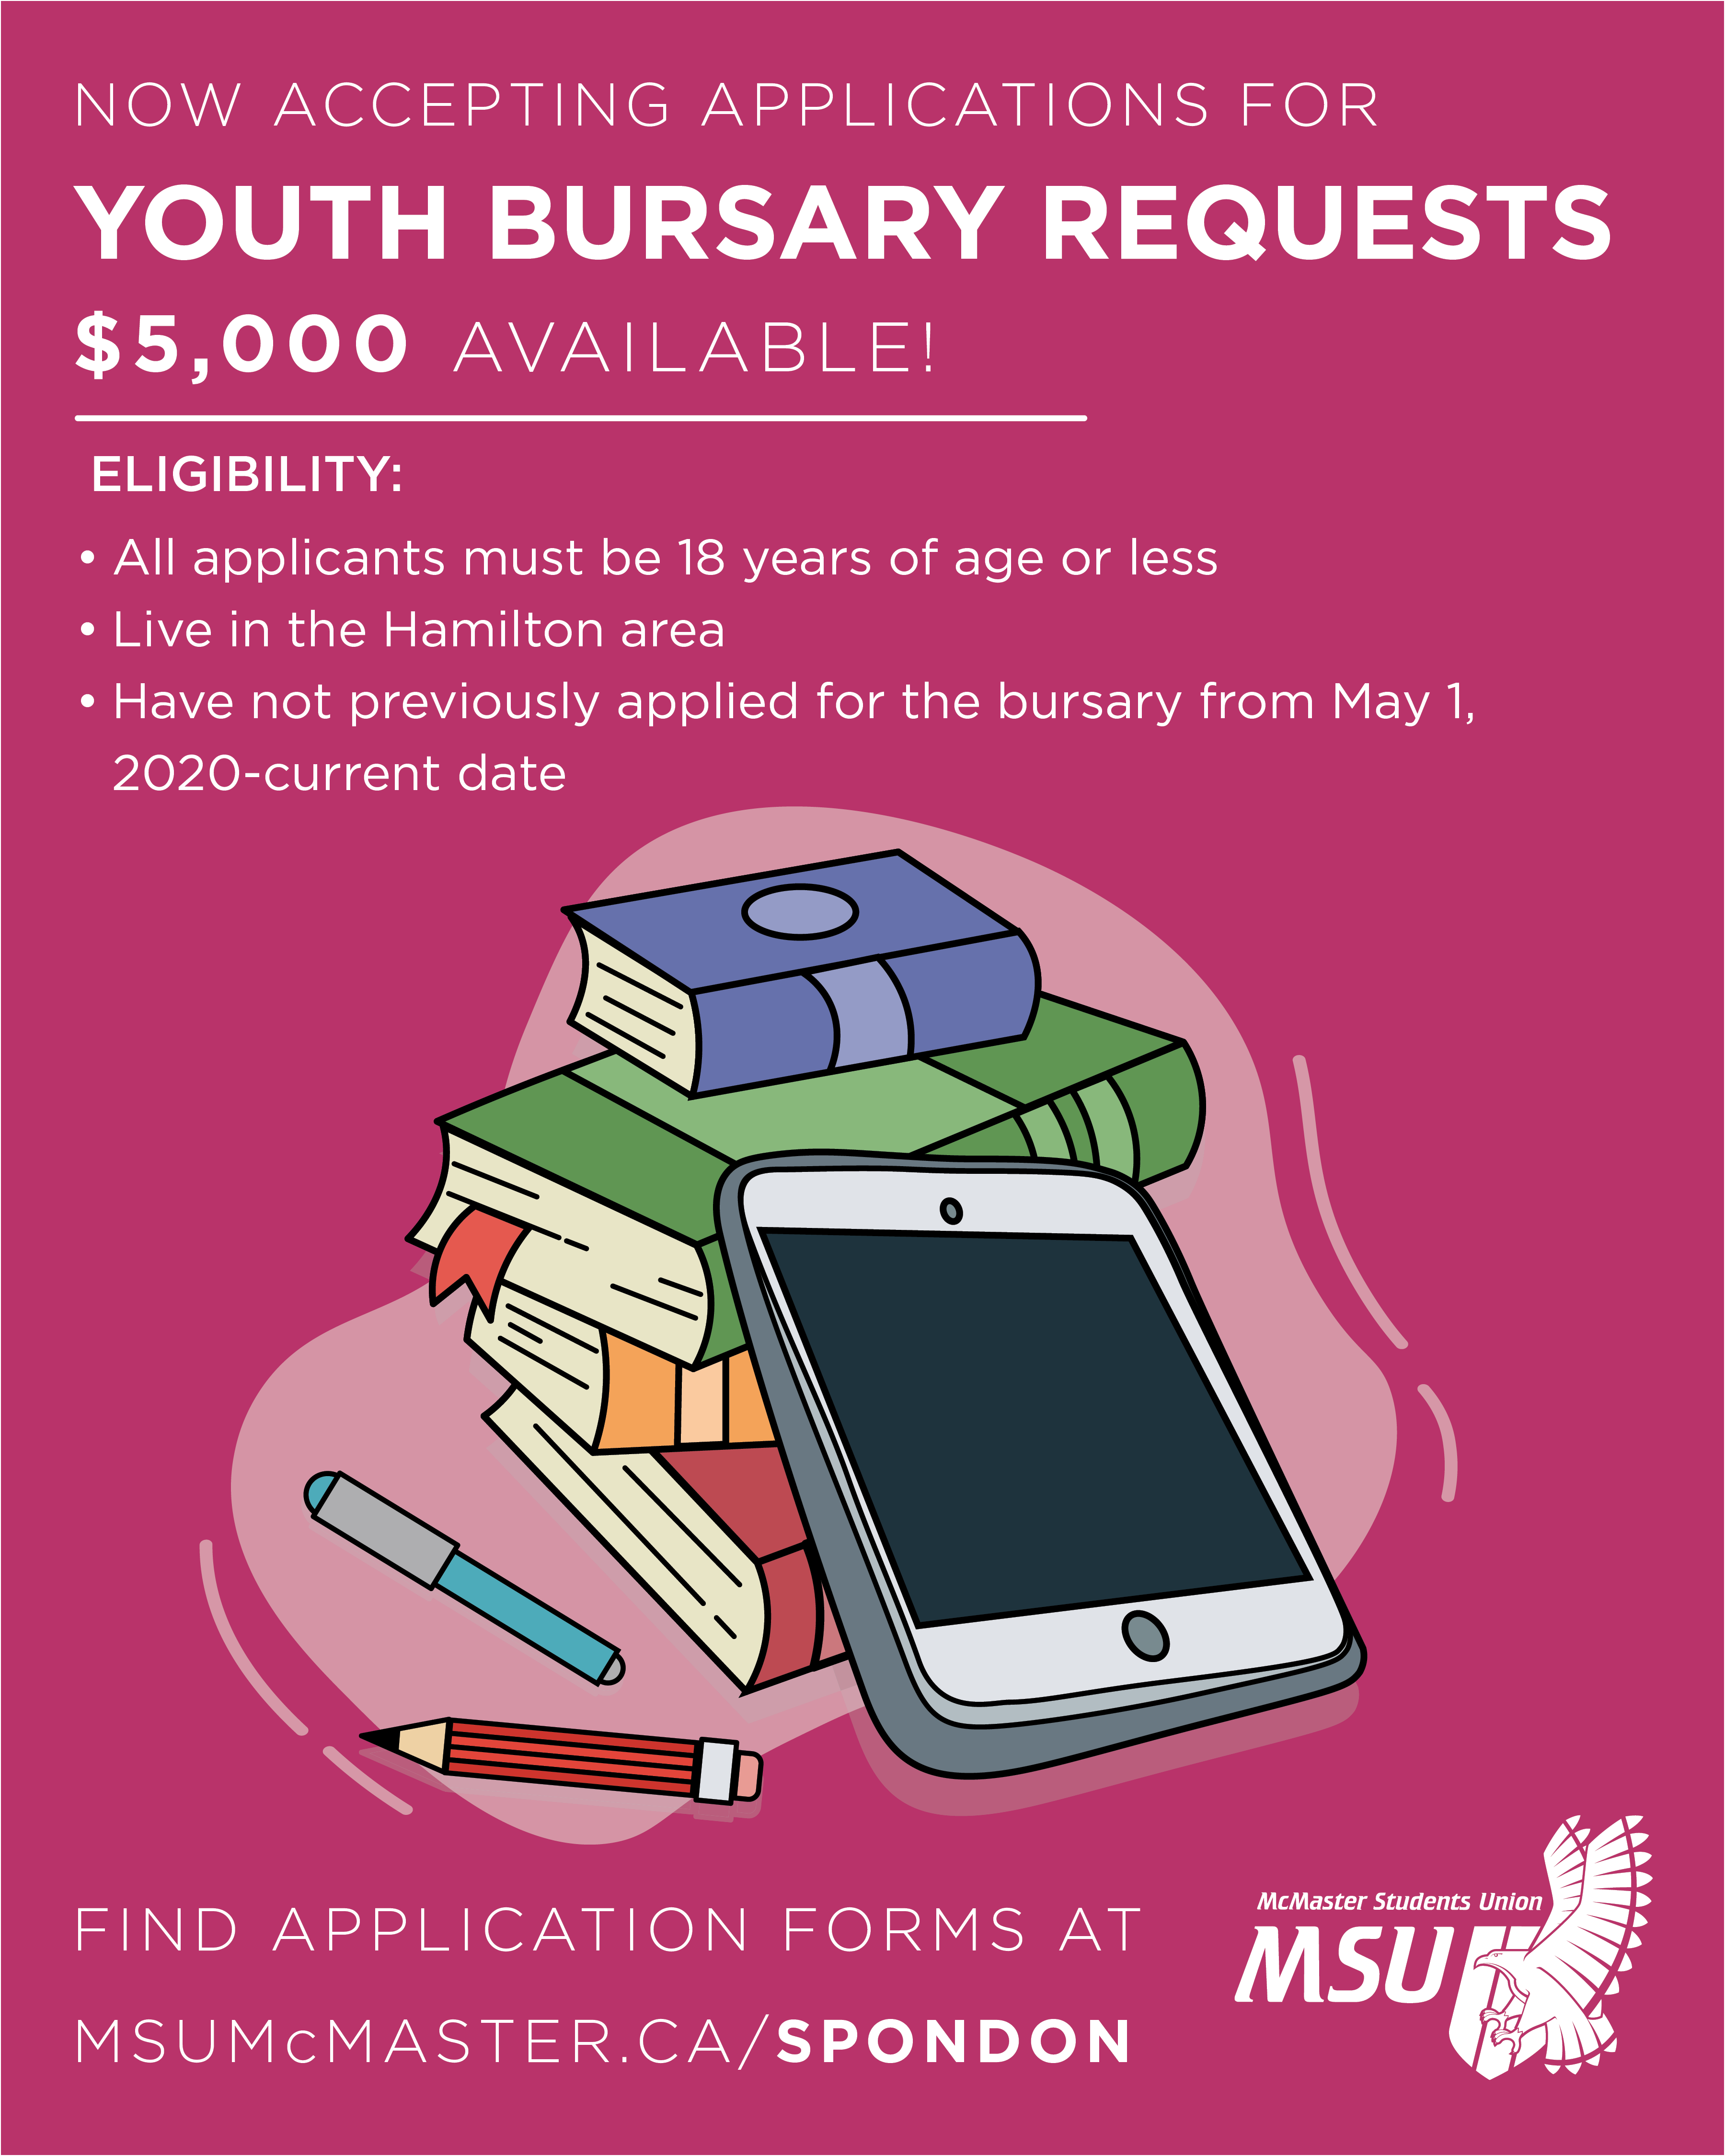 academic supplies are pictured on a pink background. The image invites applications to the MSU Youth Bursary if the applicant is 18 years of age or younger, lives in the Hamilton area and has not previoulsy applied to the bursary from May 1, 2020 to the current date.